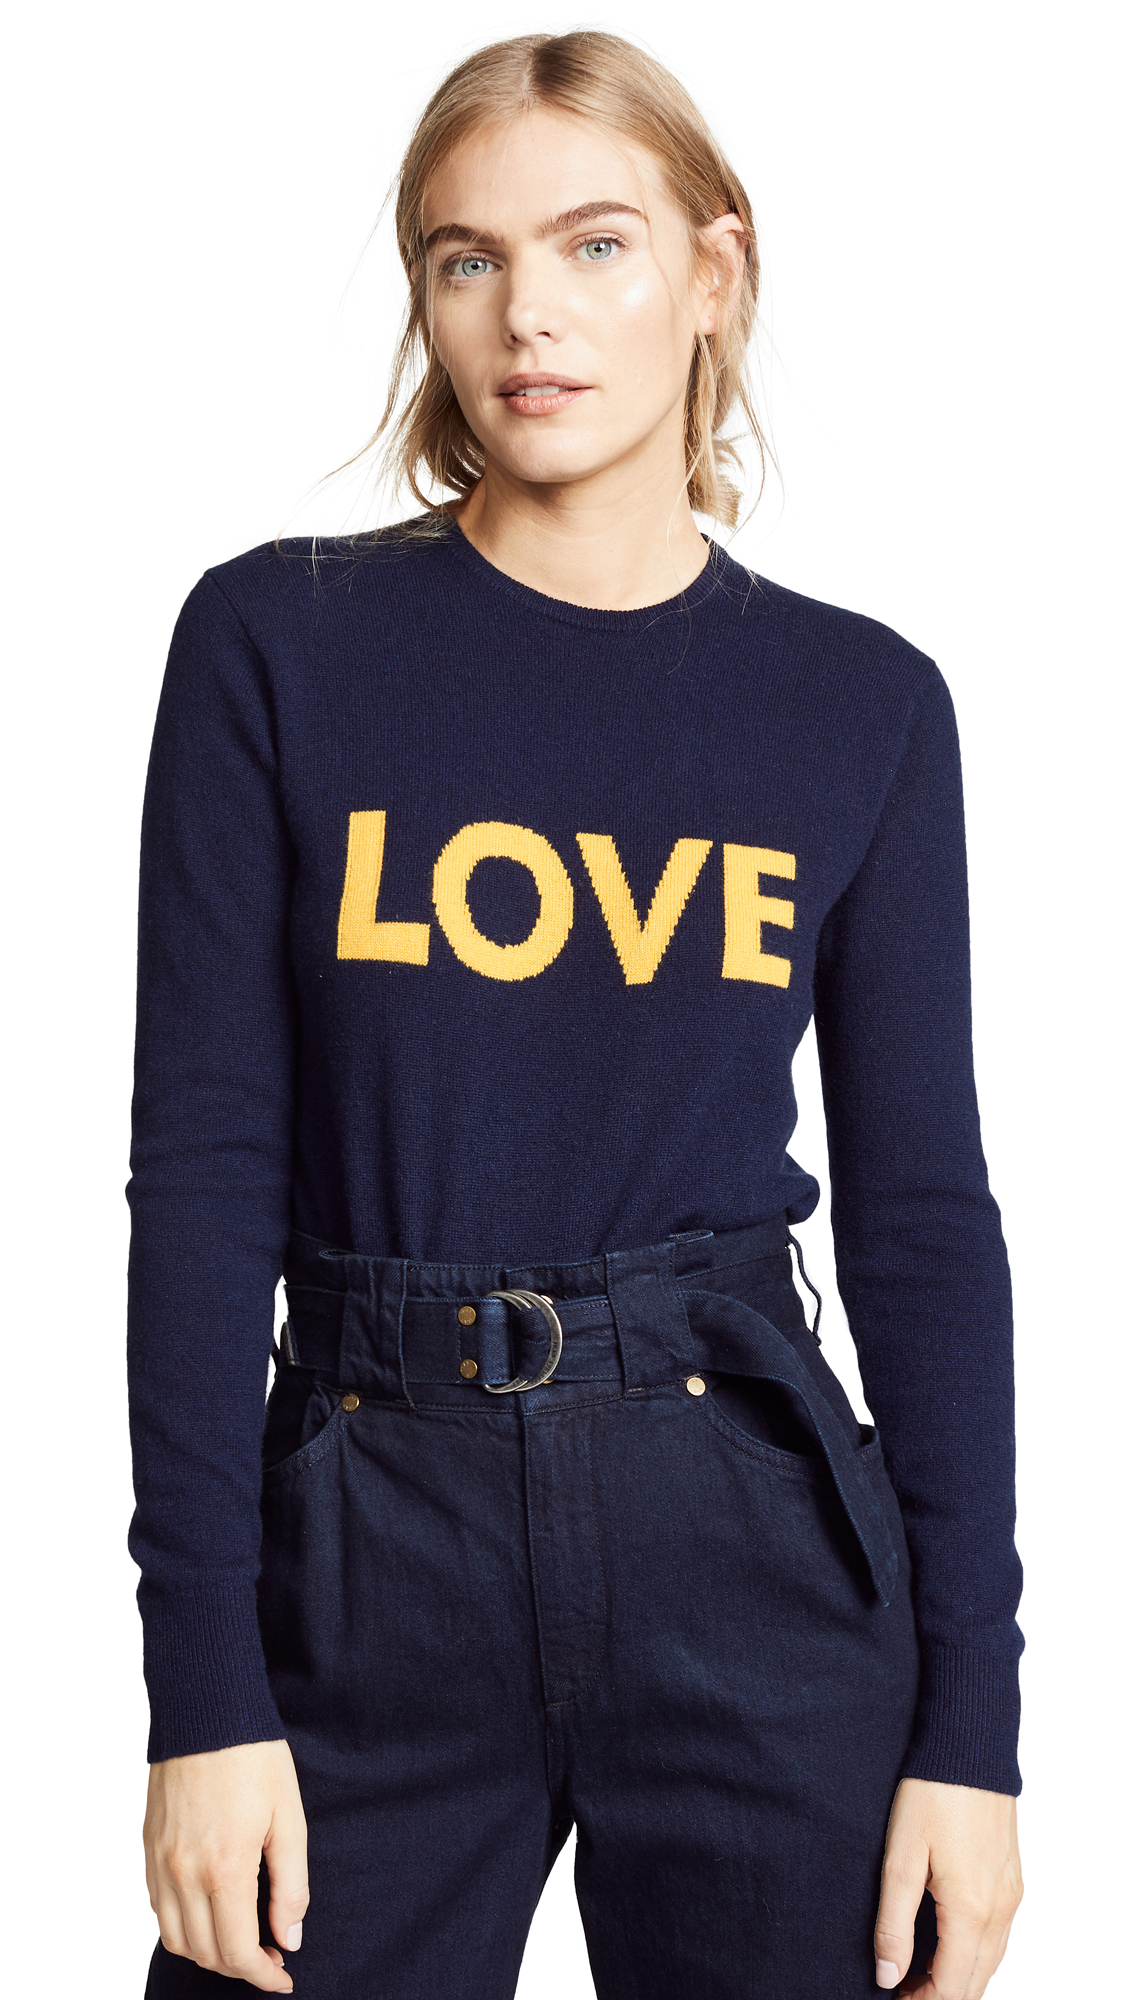 KULE The Love Cashmere Sweater in Navy/Gold